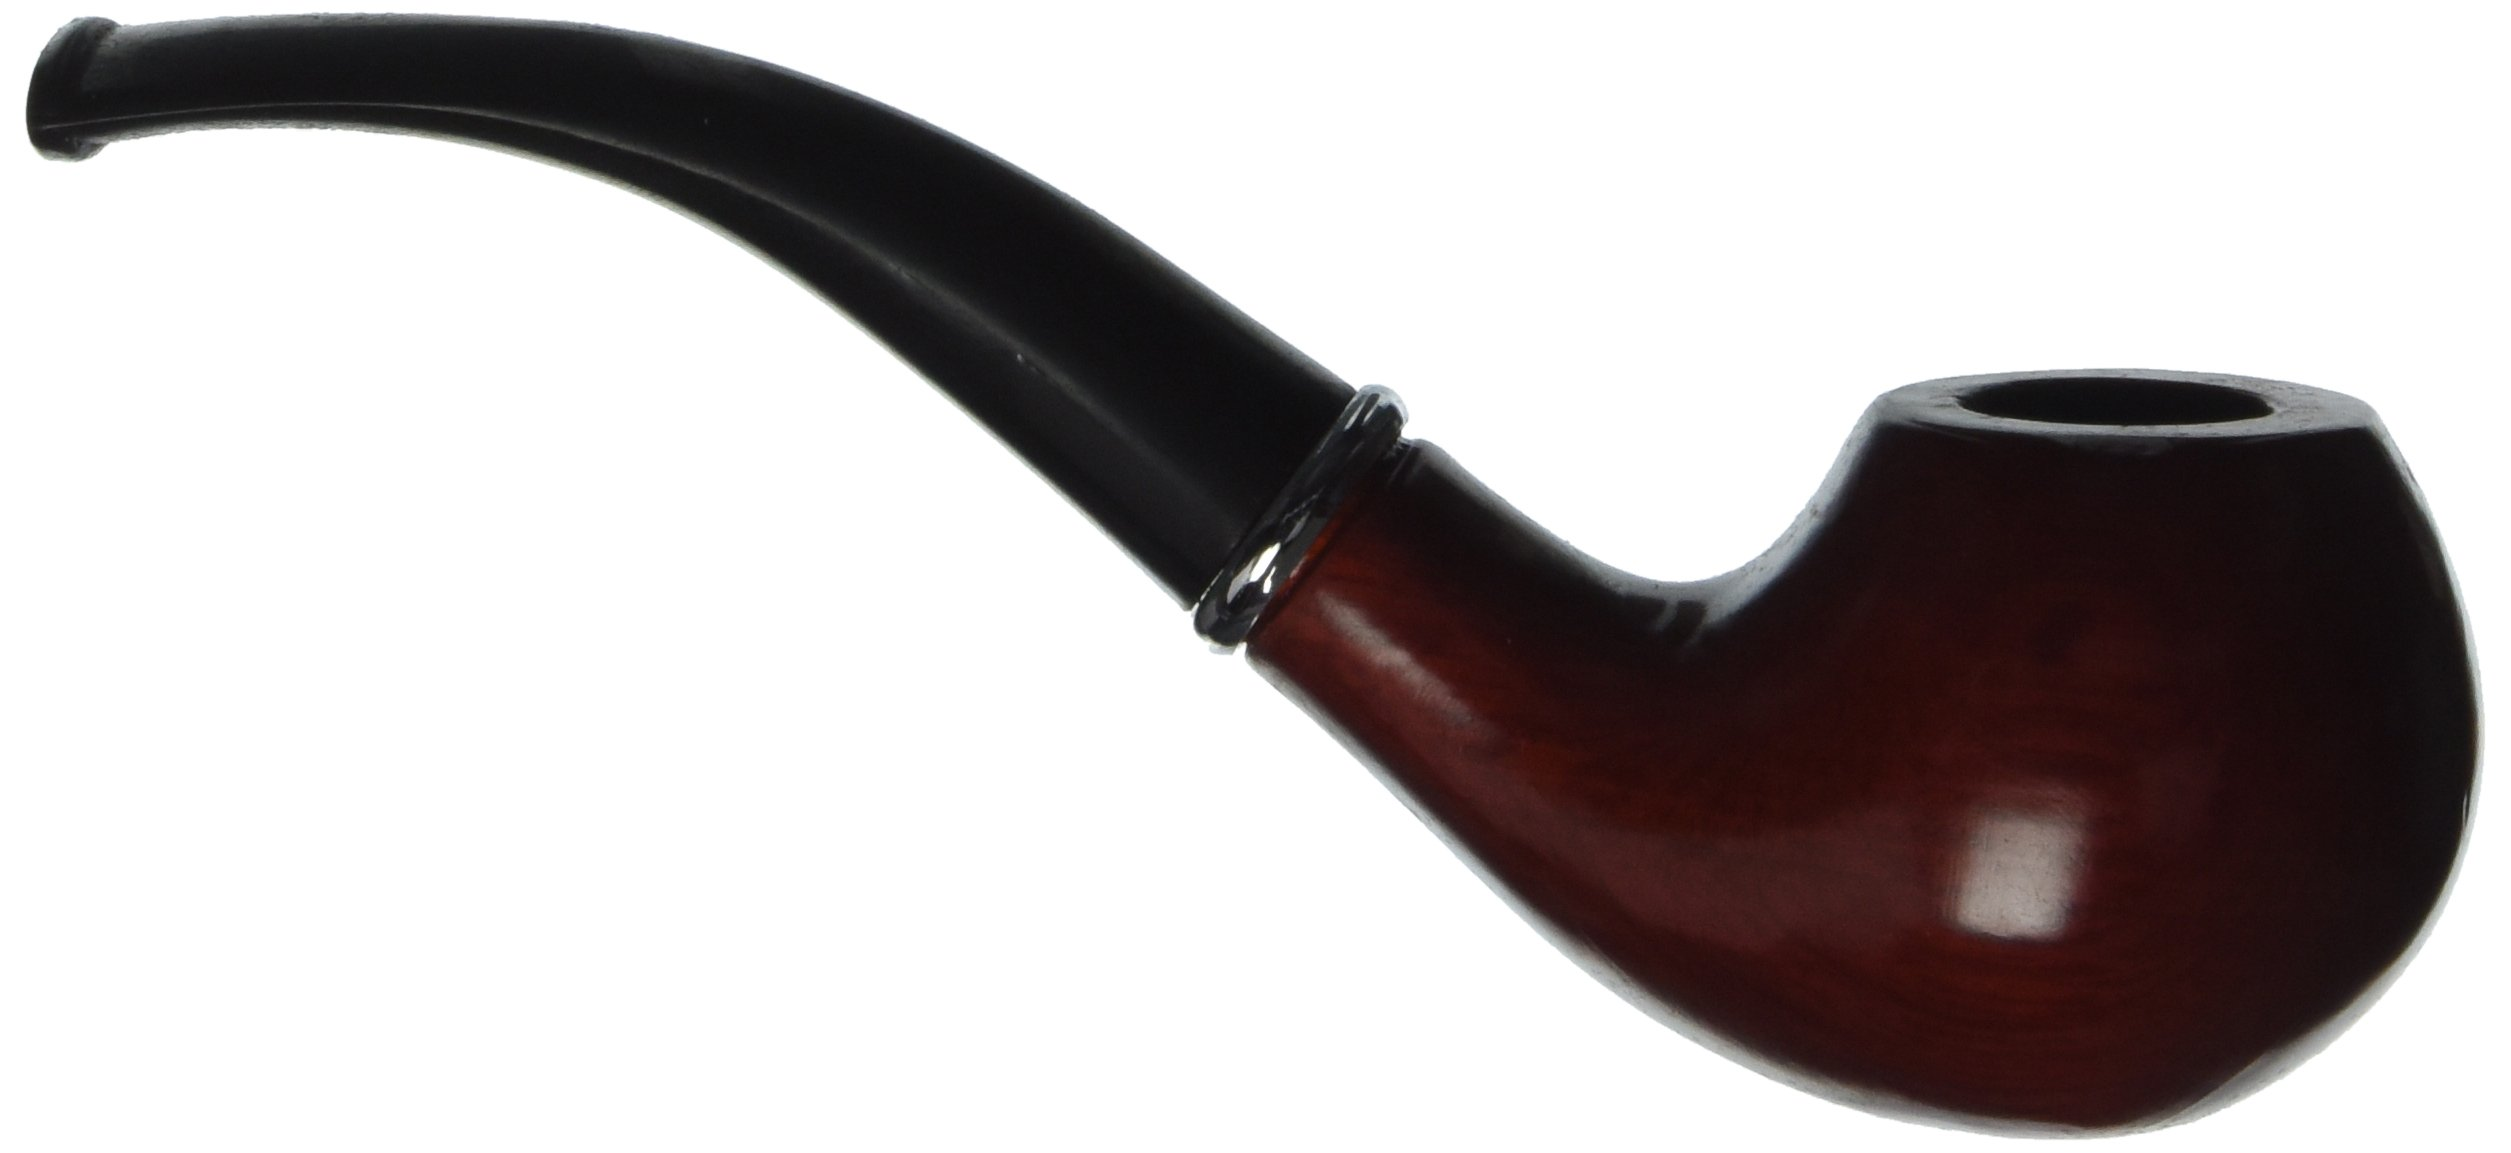 "A Classic 5.5"" Tobacco Wood Pipe"